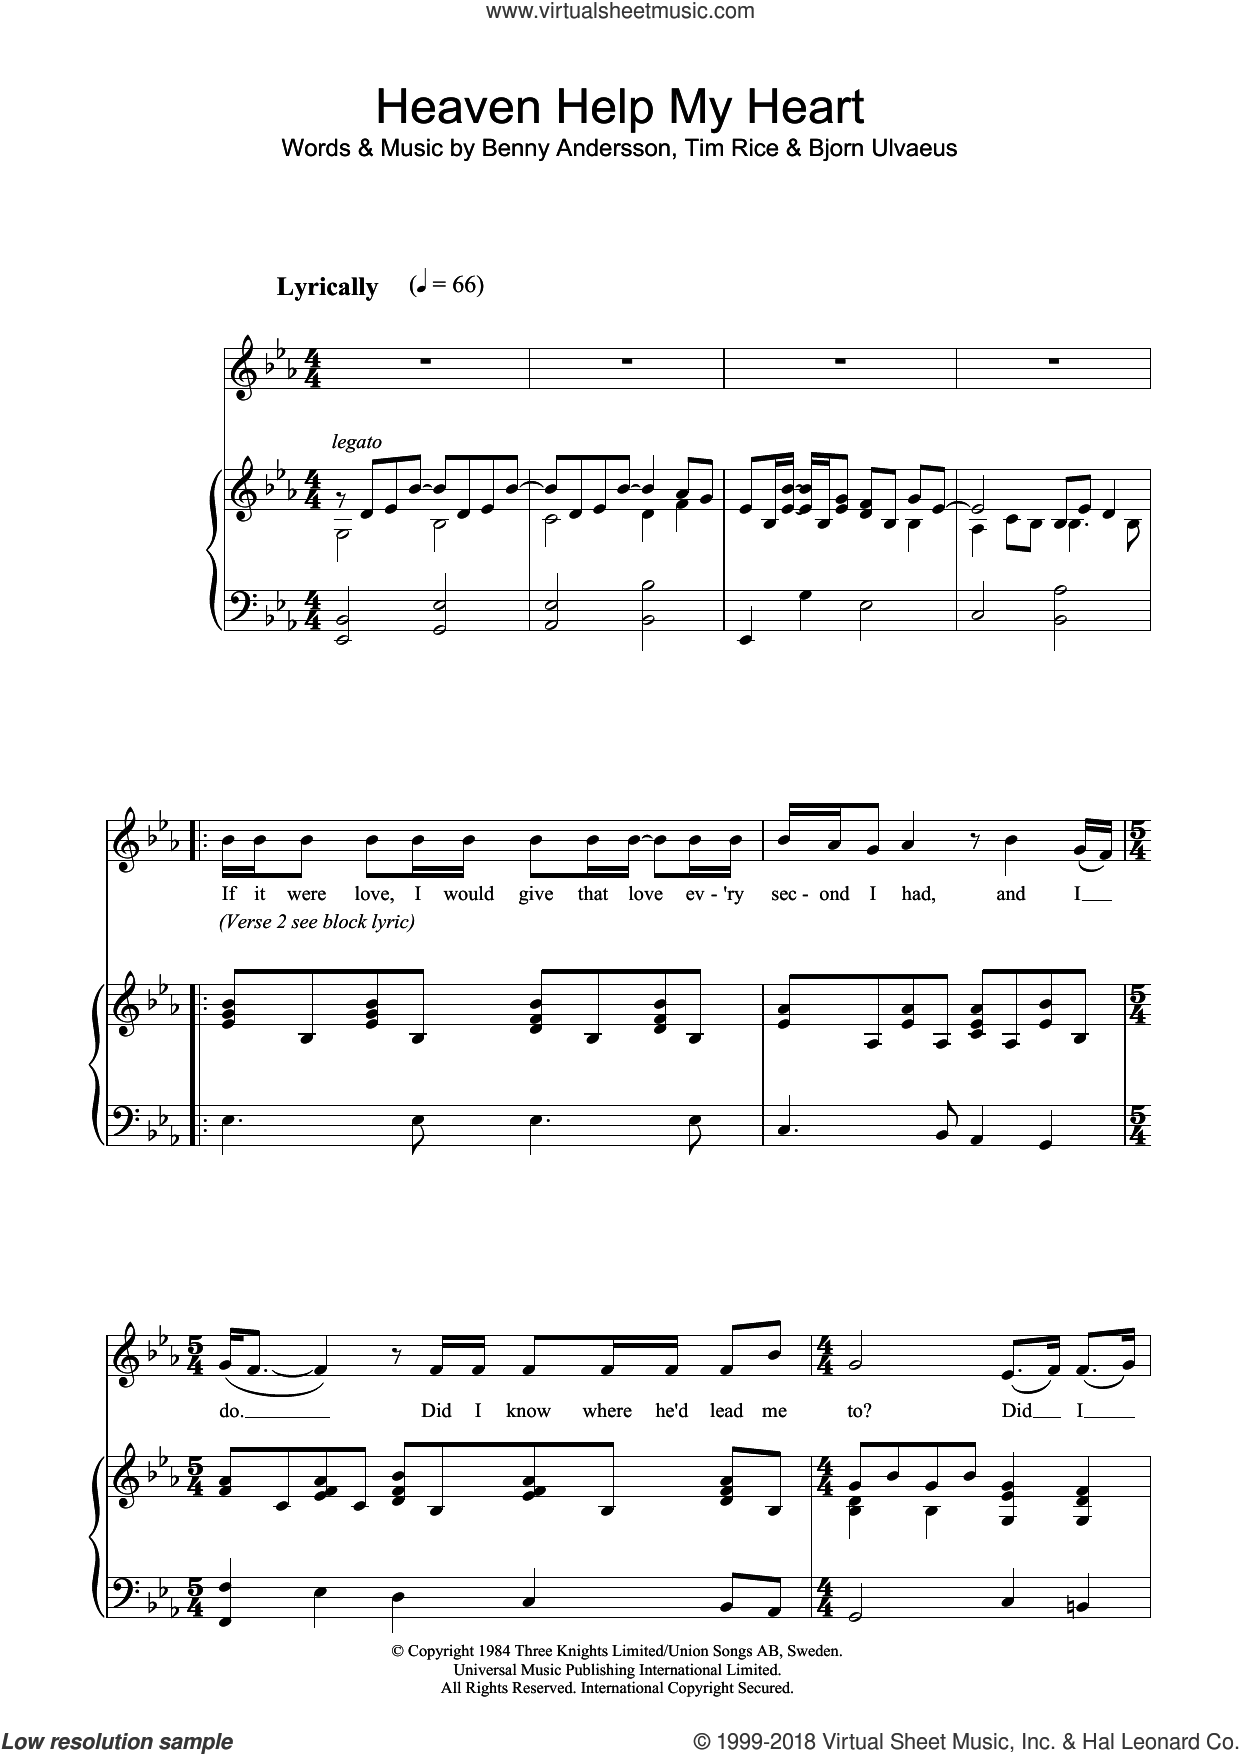 Heaven Help My Heart (from Chess) sheet music for voice and piano by Tim Rice, Chess (Musical), Benny Andersson and Bjorn Ulvaeus, intermediate skill level